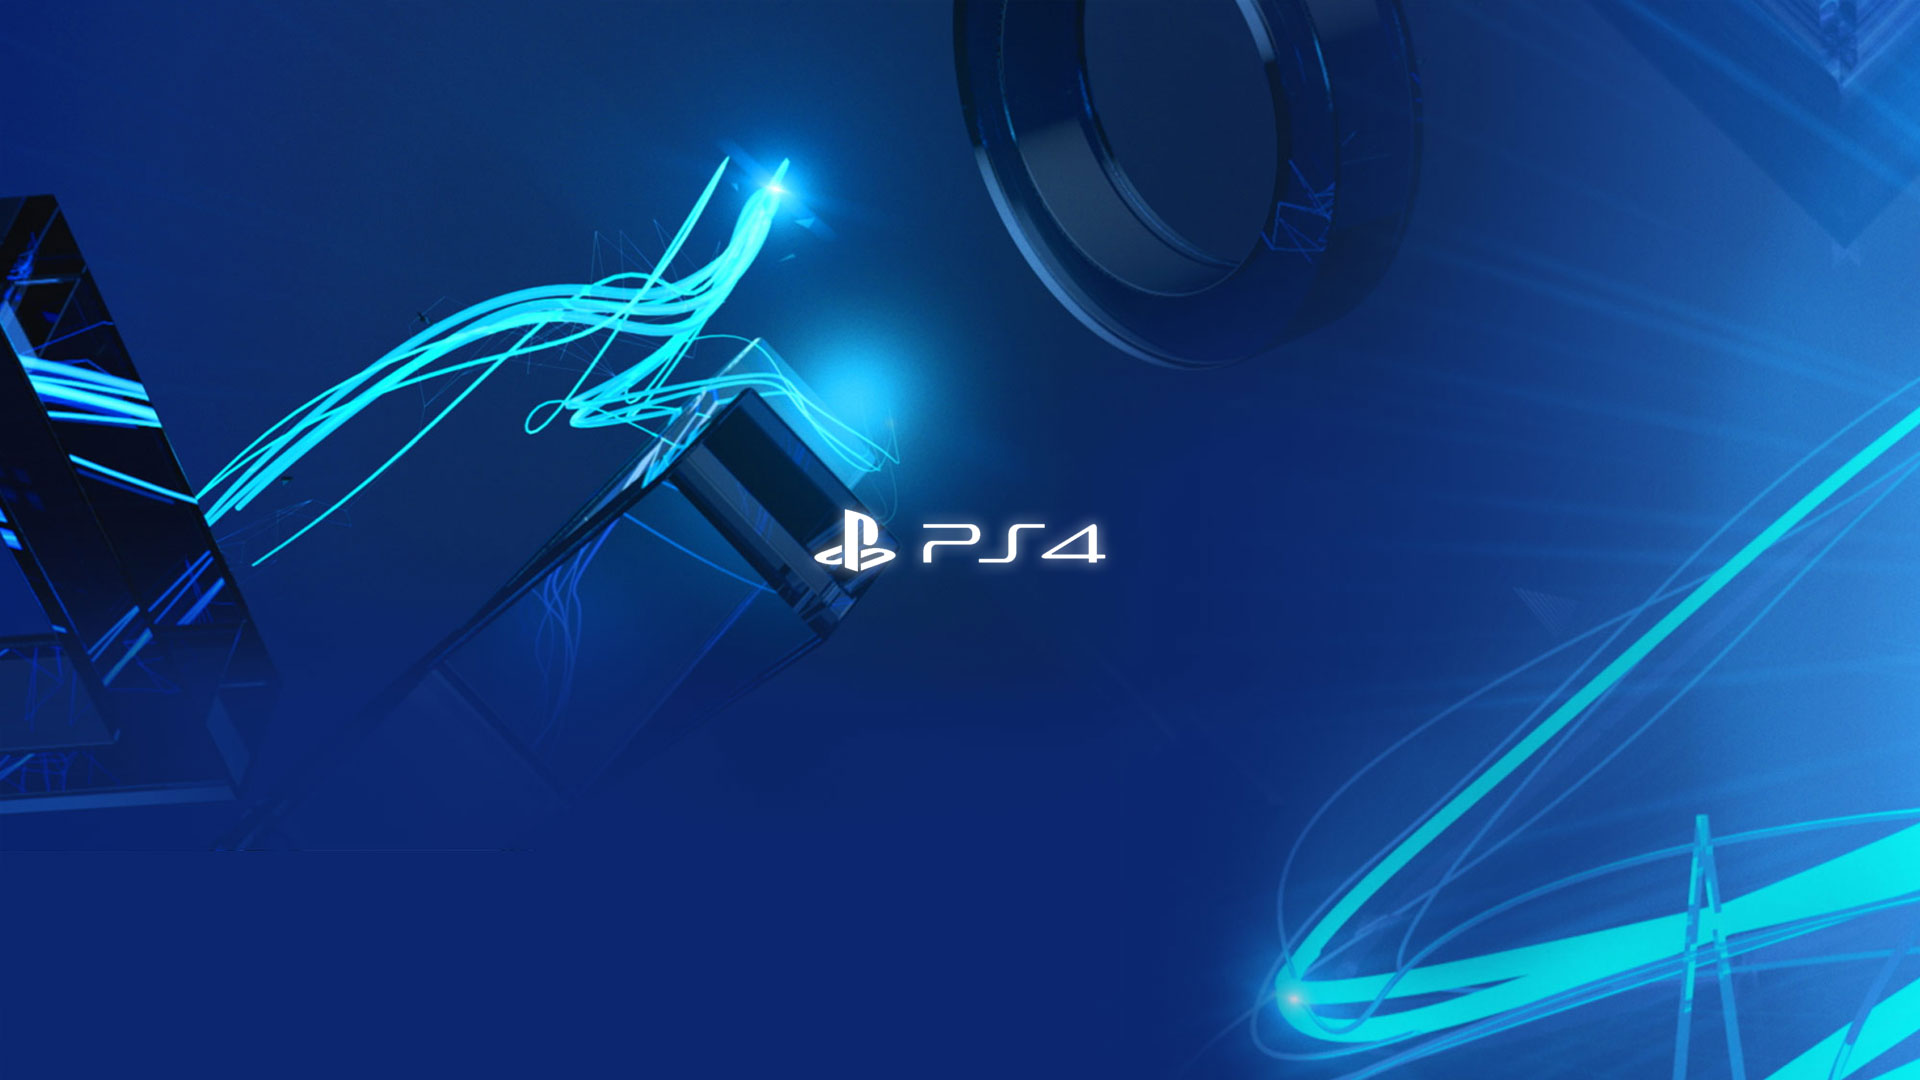 PS4 Wallpapers PlayStation 4 Wallpapers HD 1920x1080